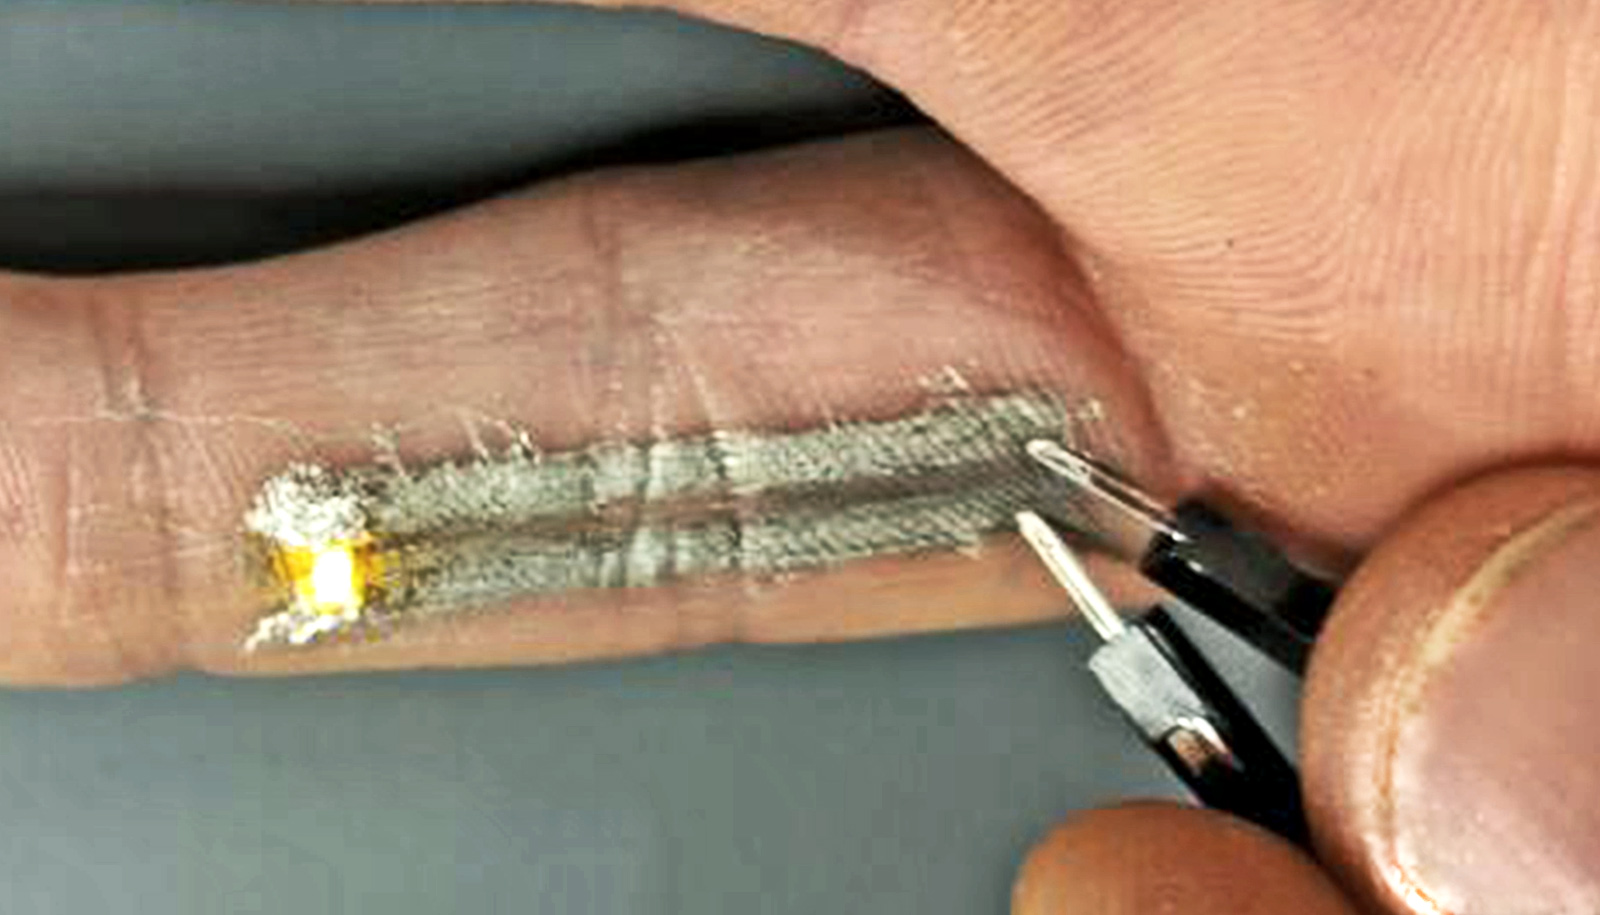 Light-up tattoos use electronics printed right onto skin